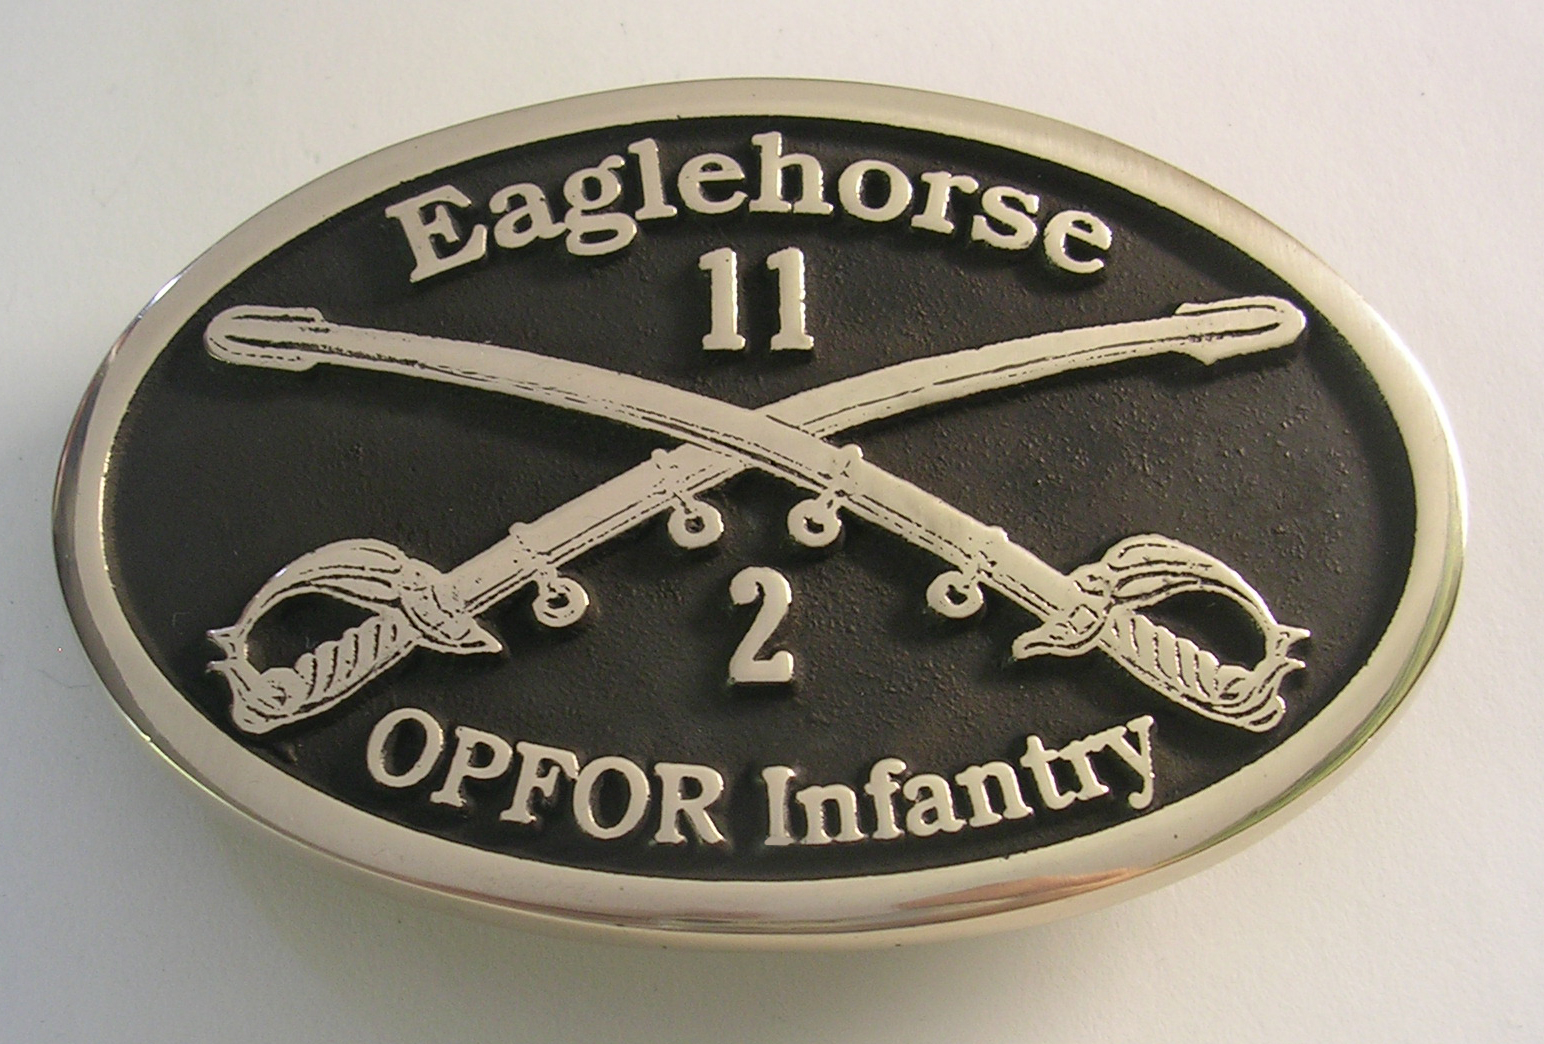 OPFOR Infantry Buckle